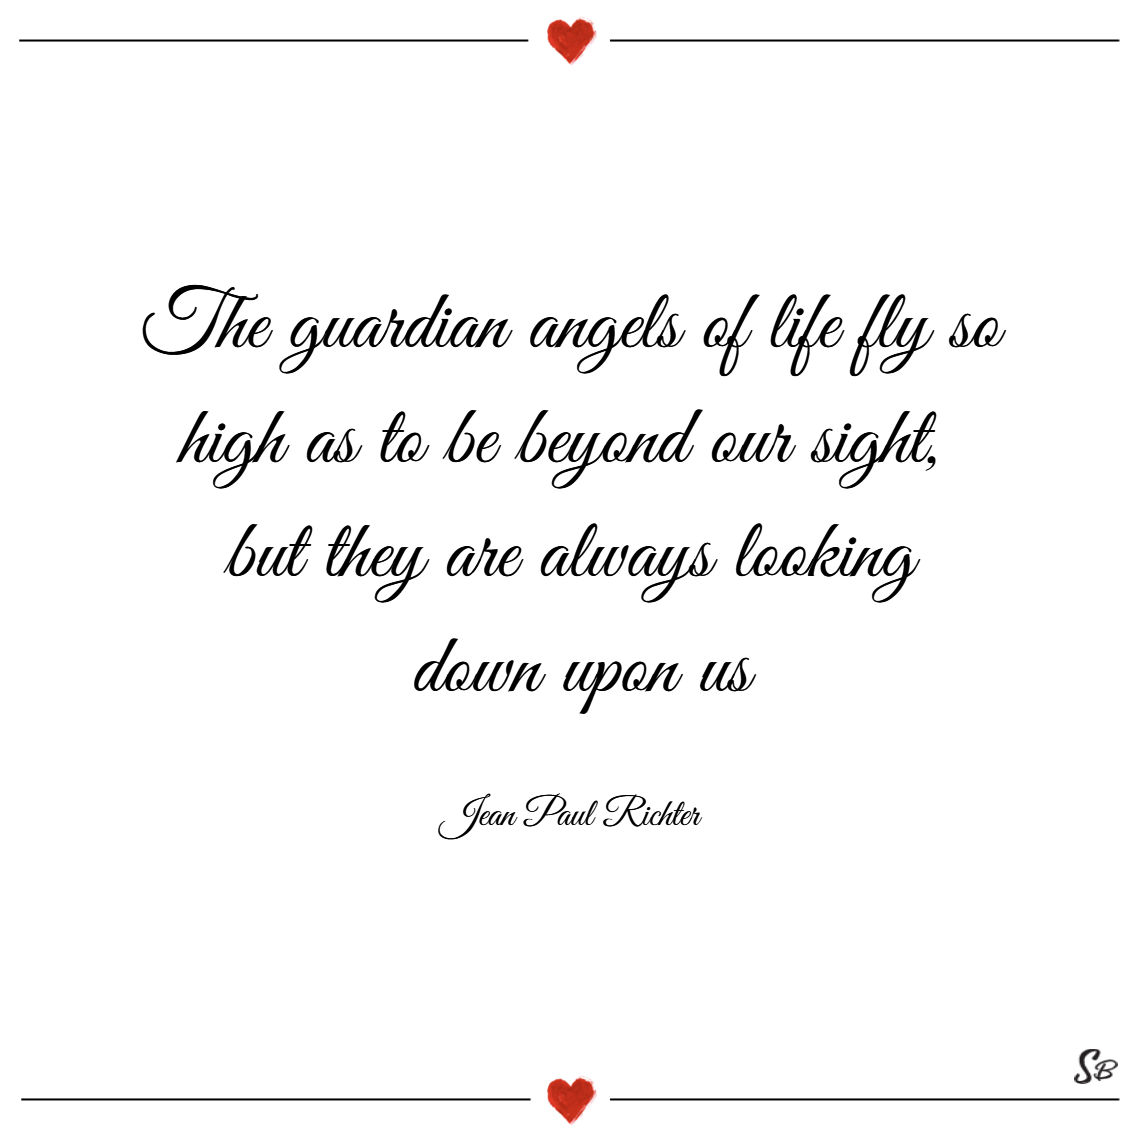 The guardian angels of life fly so high as to be beyond our sight, but they are always looking down upon us. – jean paul richter